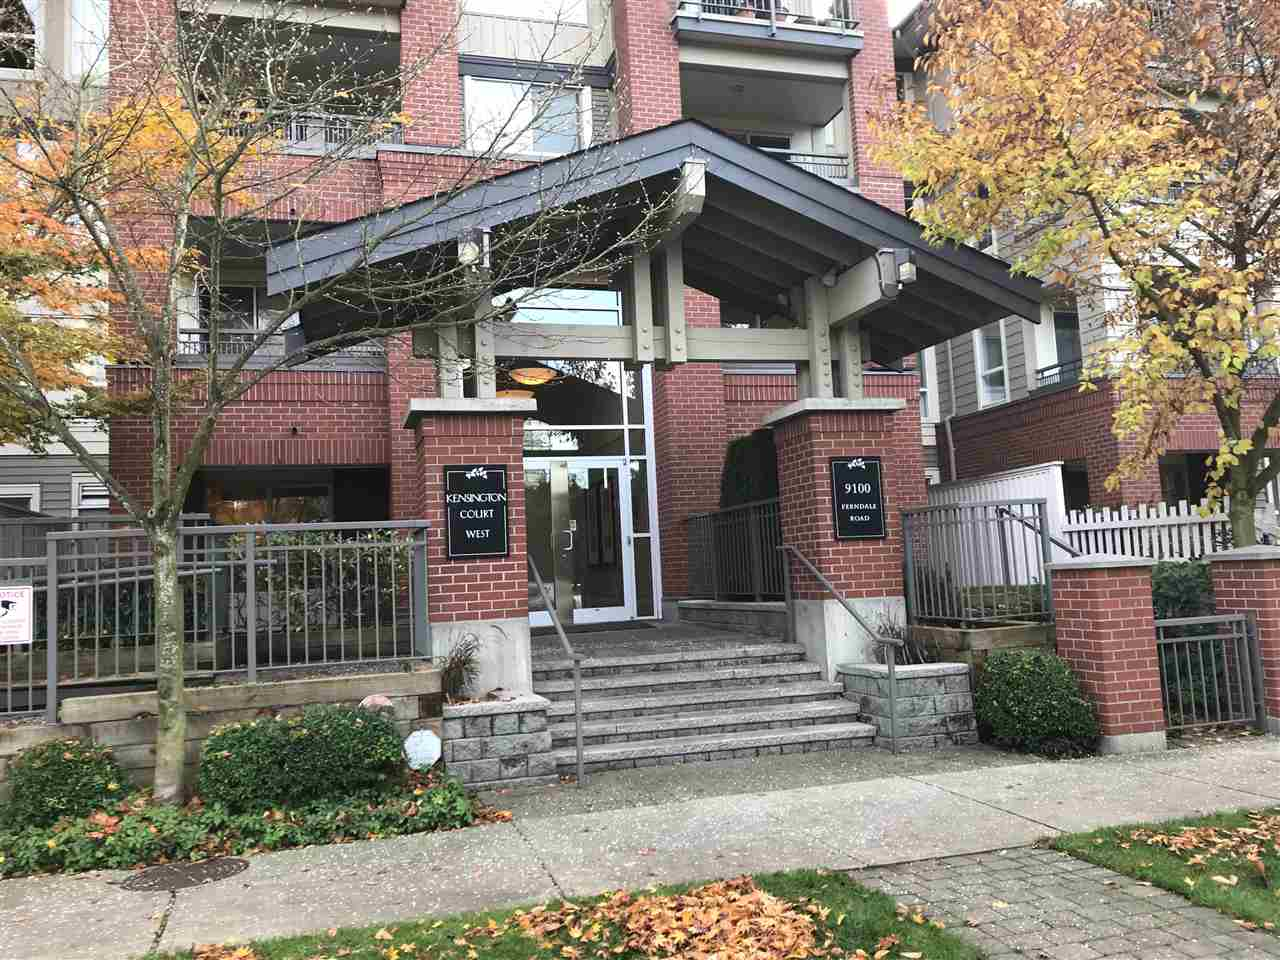 Main Photo: 165 9100 FERNDALE ROAD in Richmond: McLennan North Condo for sale : MLS® # R2220992